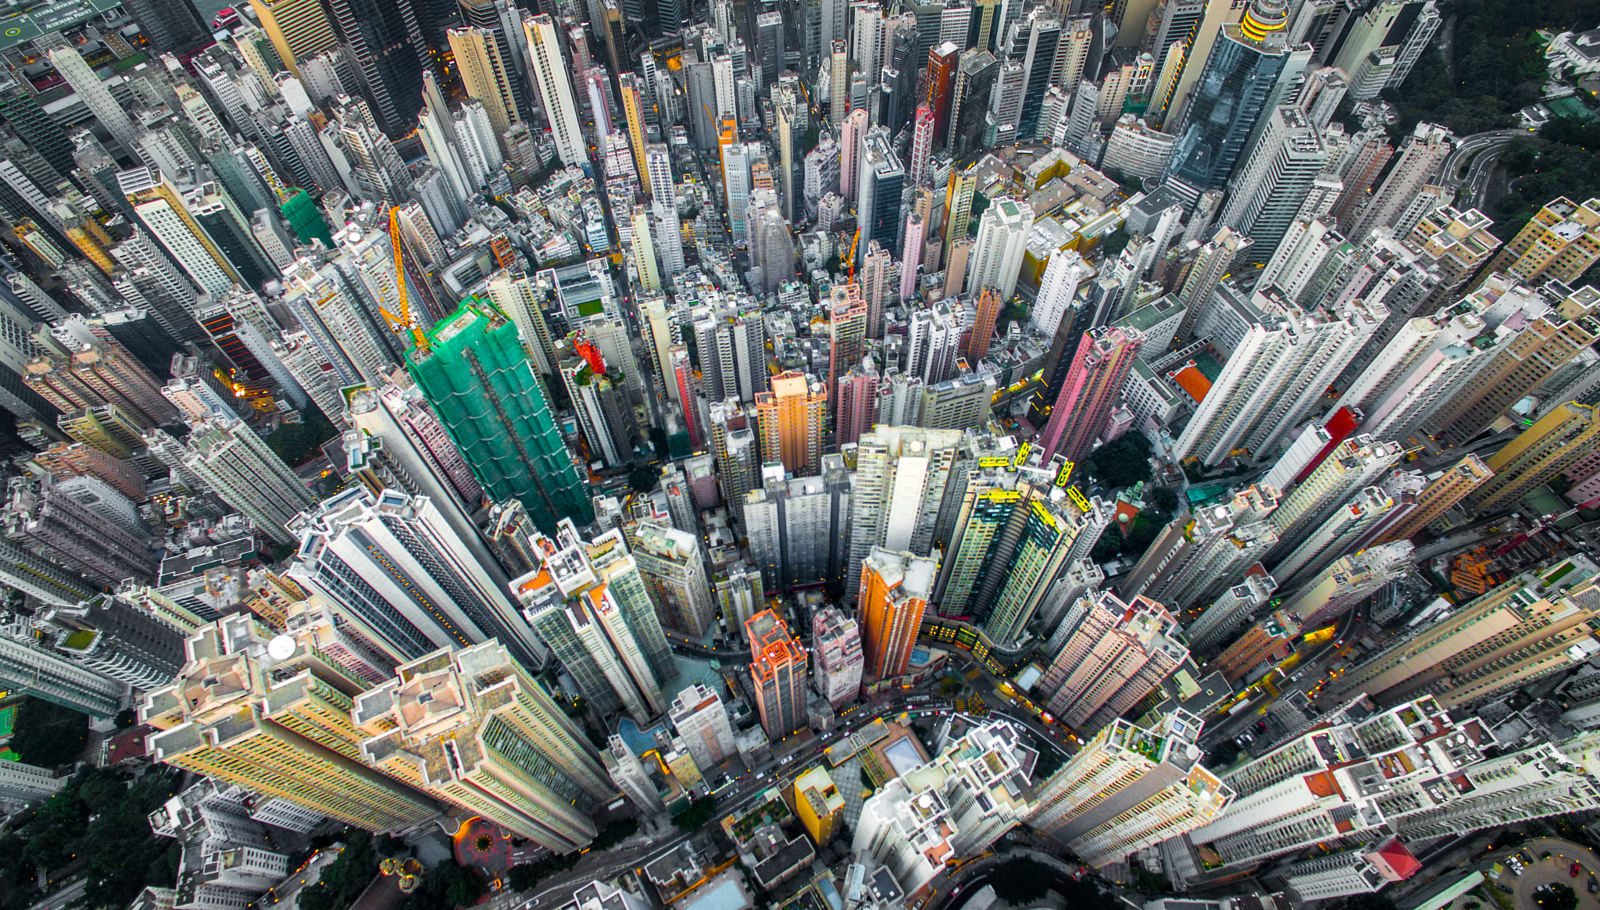 Drone Photos Show the Crazy Urban Density of Hong Kong